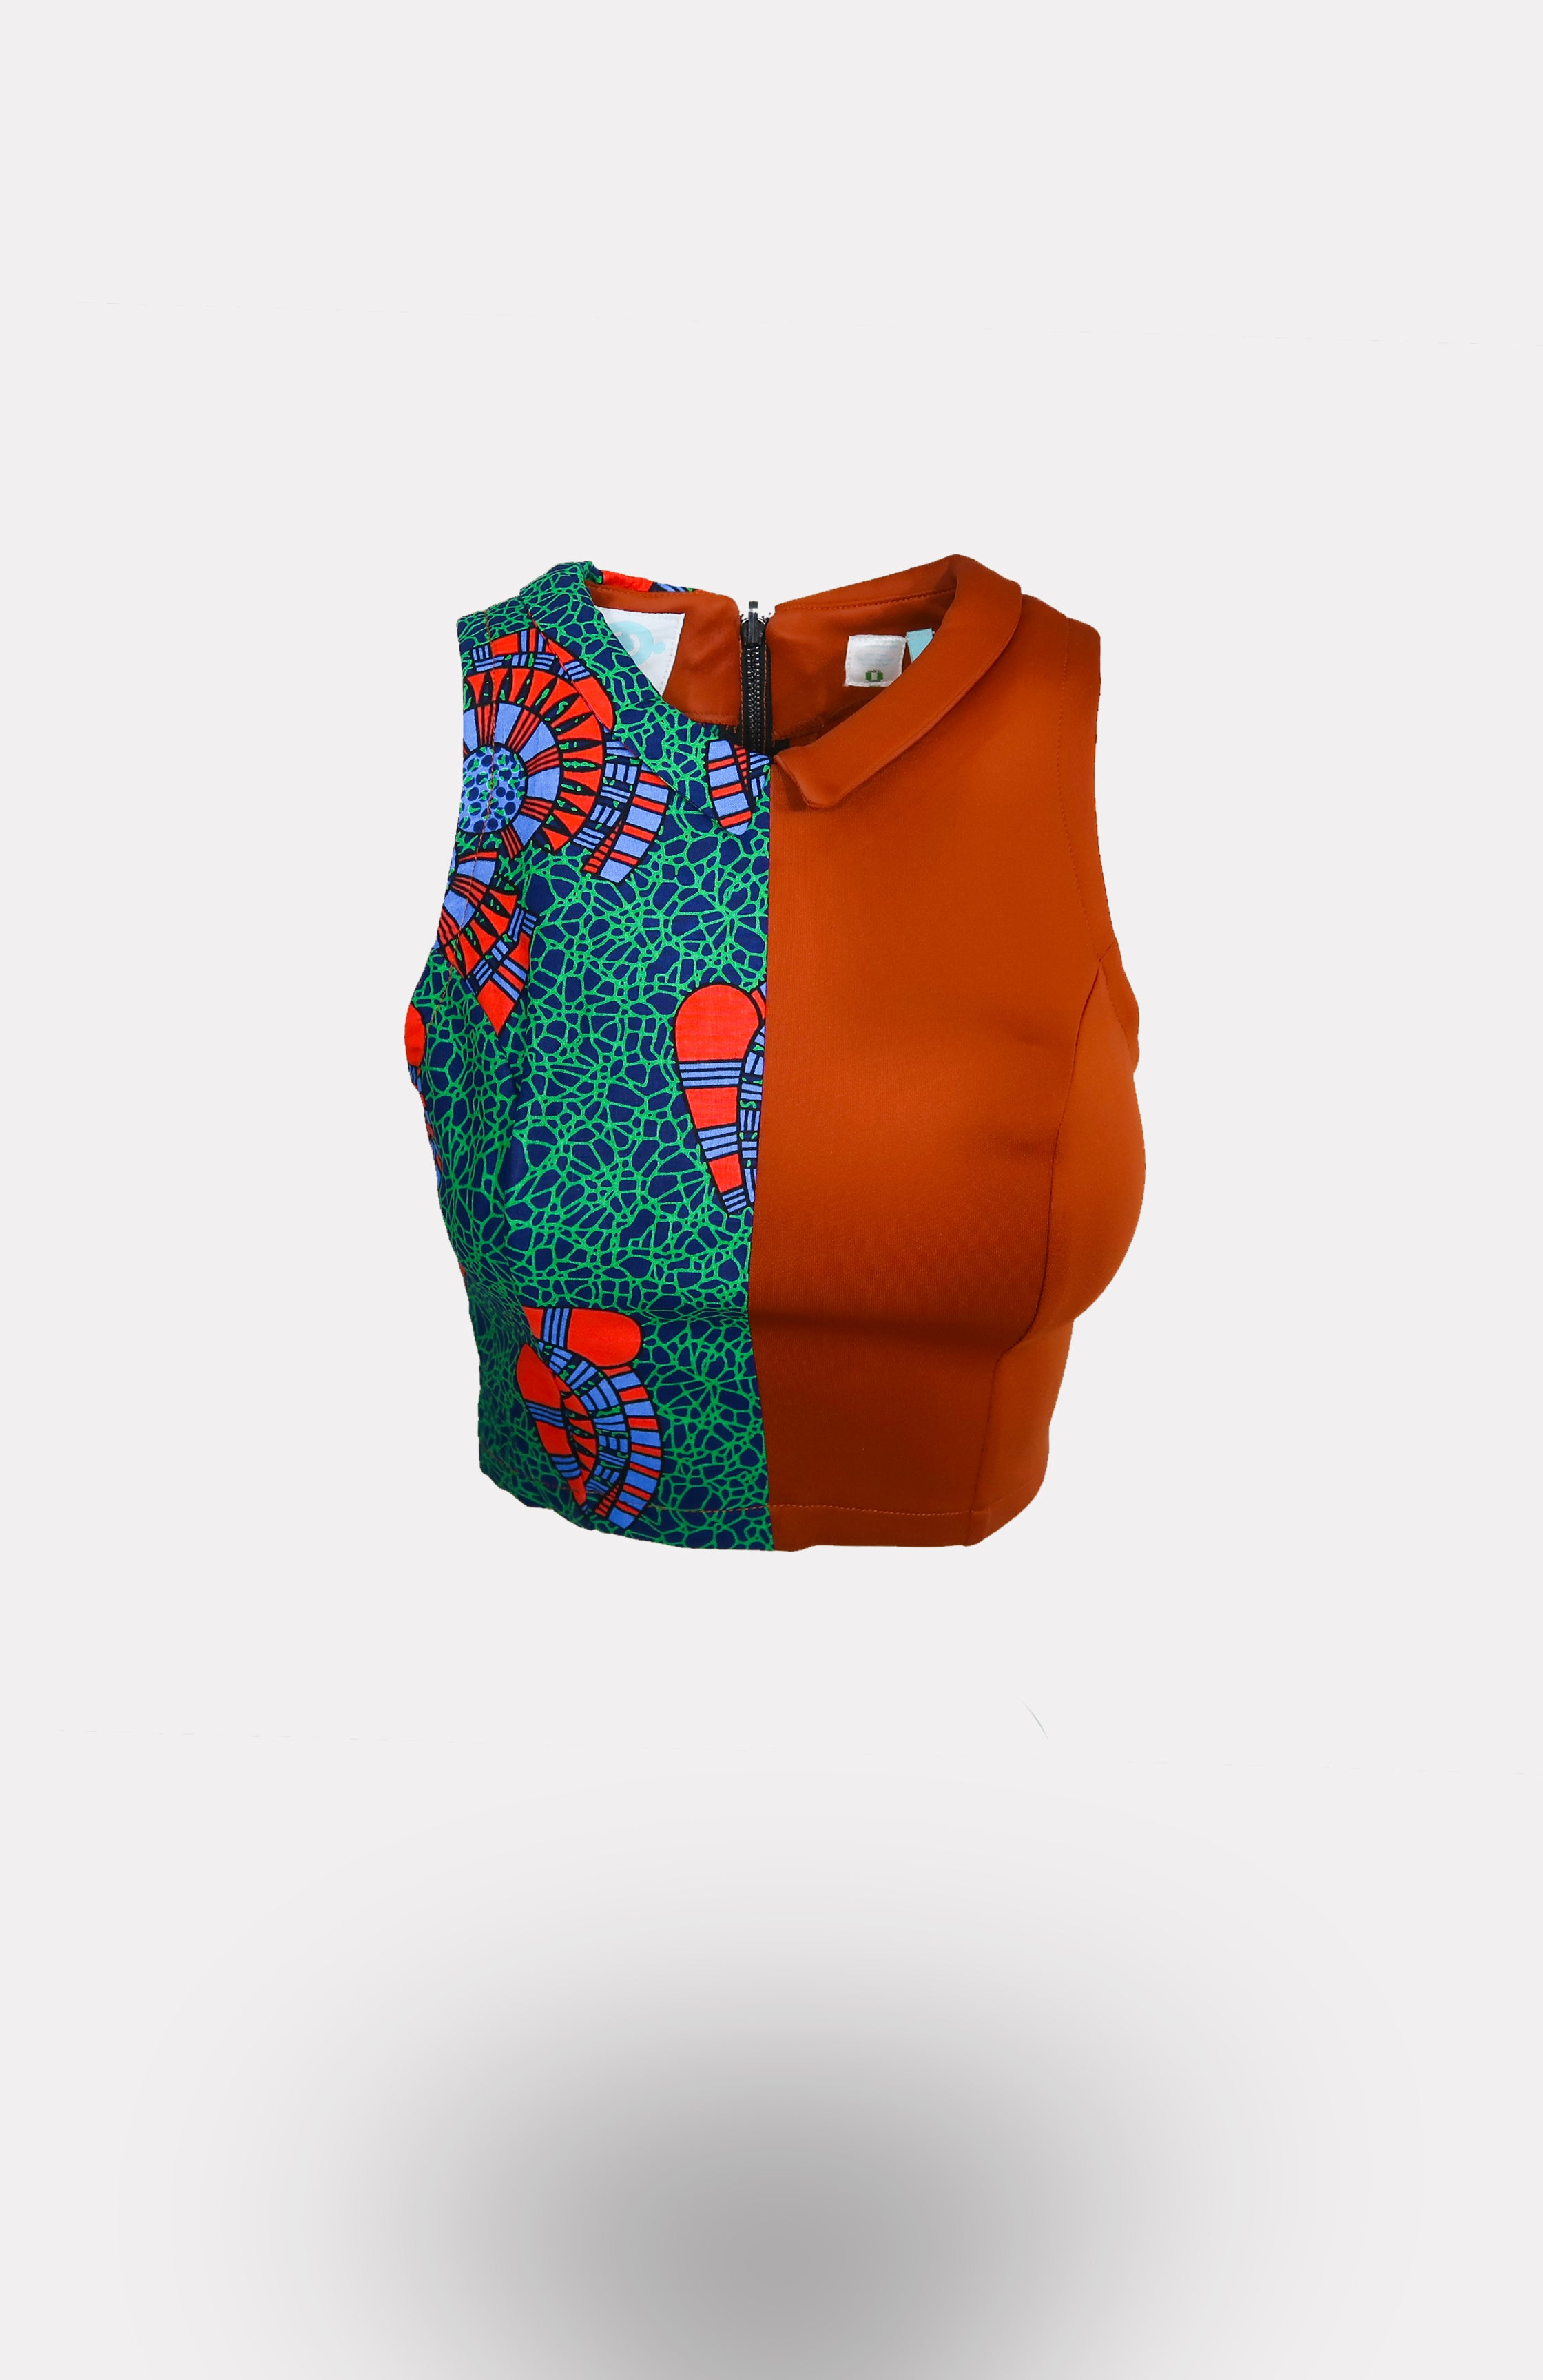 Two-Faced Crop Top in Orange w/ Ikeogu African Print - African Wax - Ankara - Chinero Nnamani